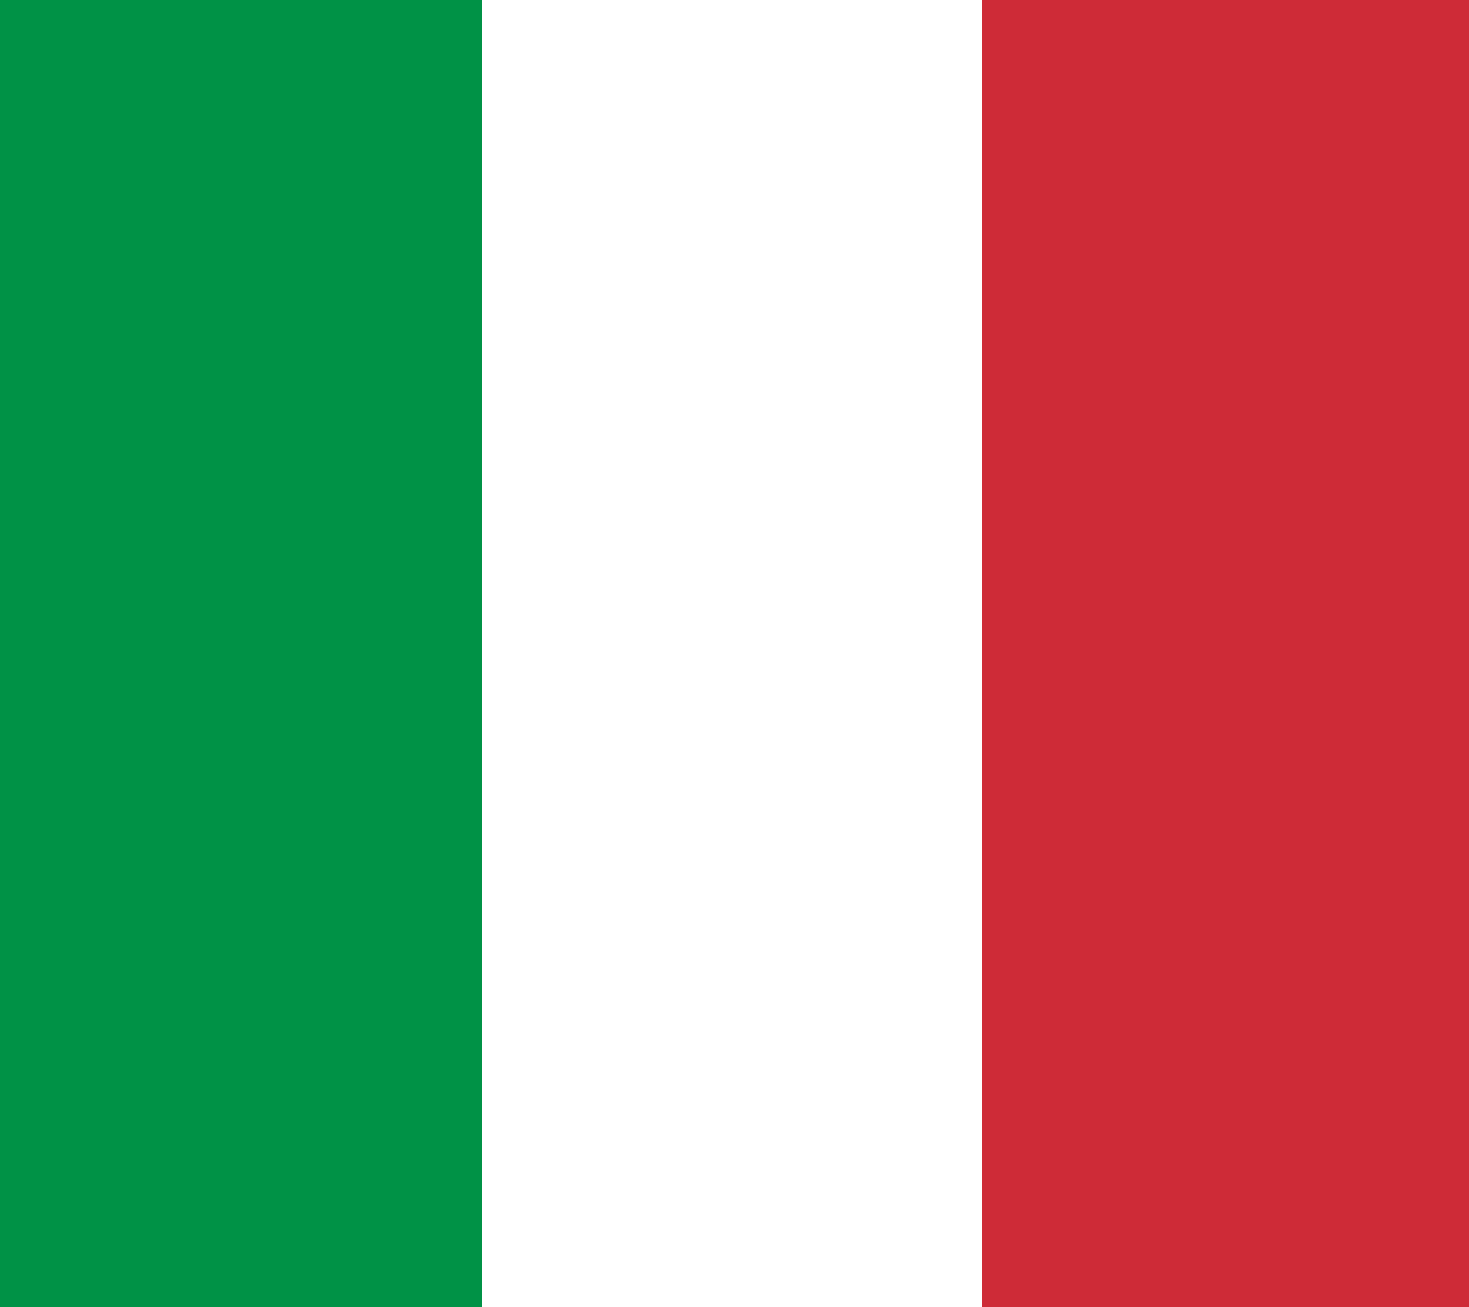 Italian language pack